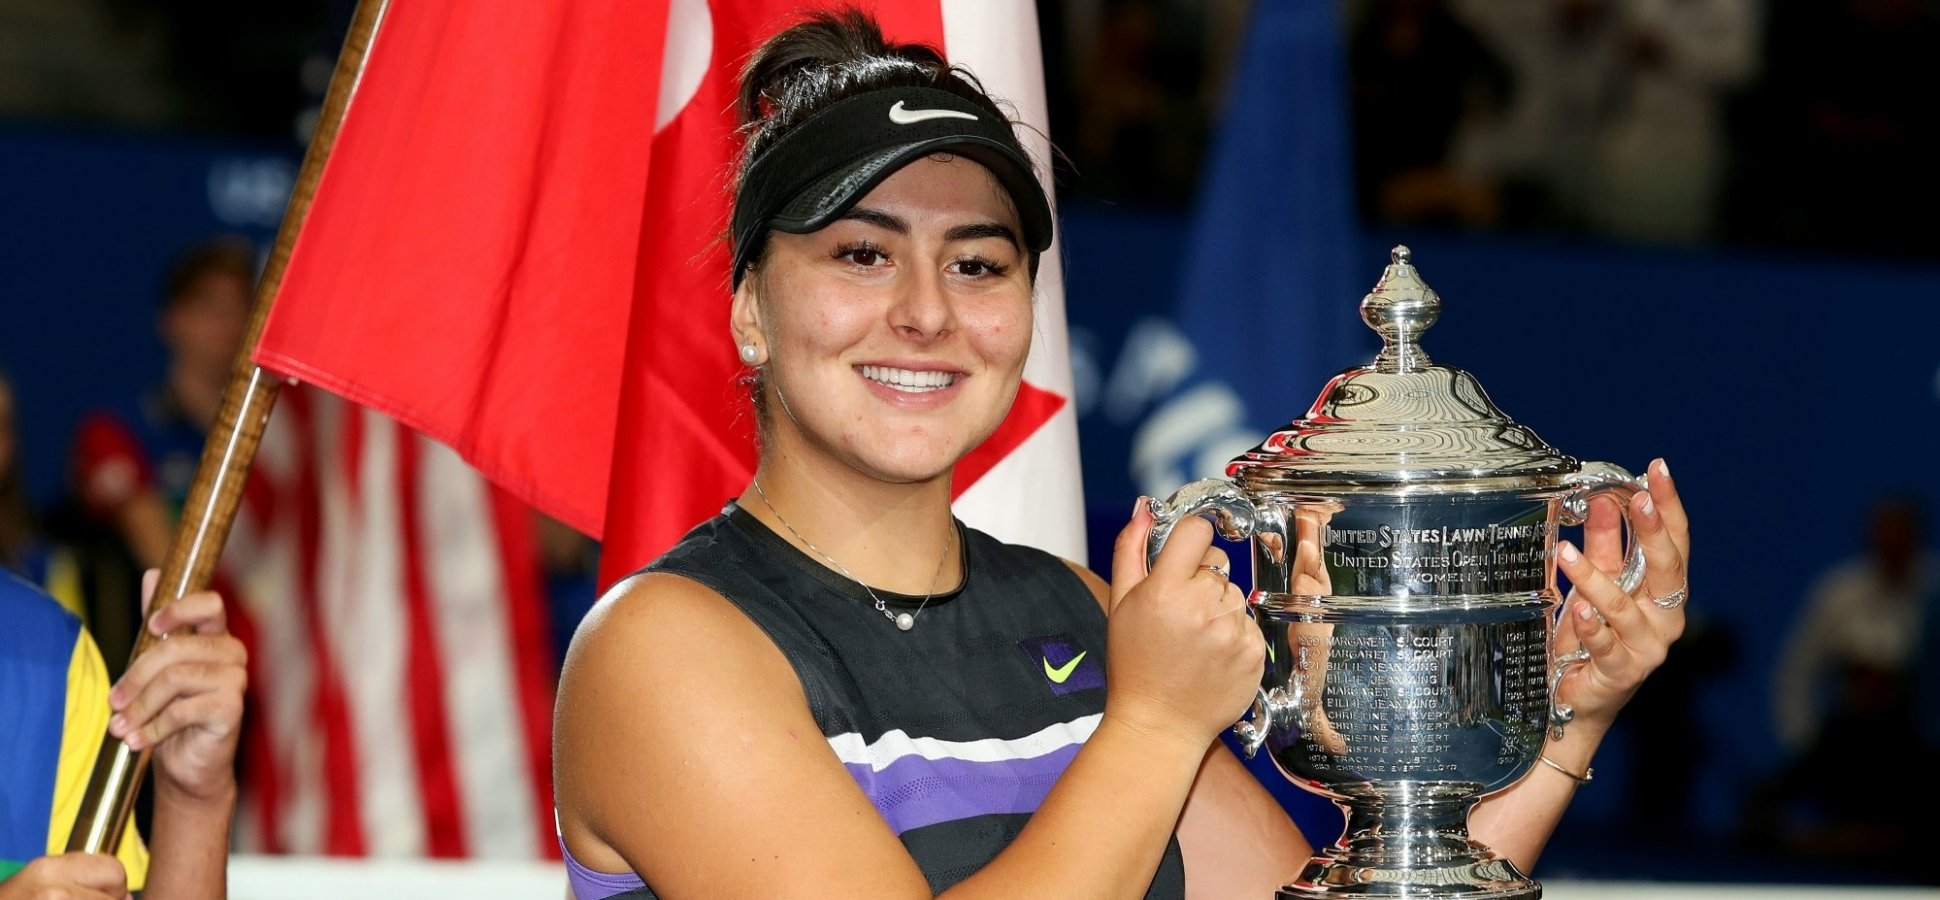 US Open's 19-Year-Old Champion Reveals the 1 Thing That 'Separates the Best from the Rest'